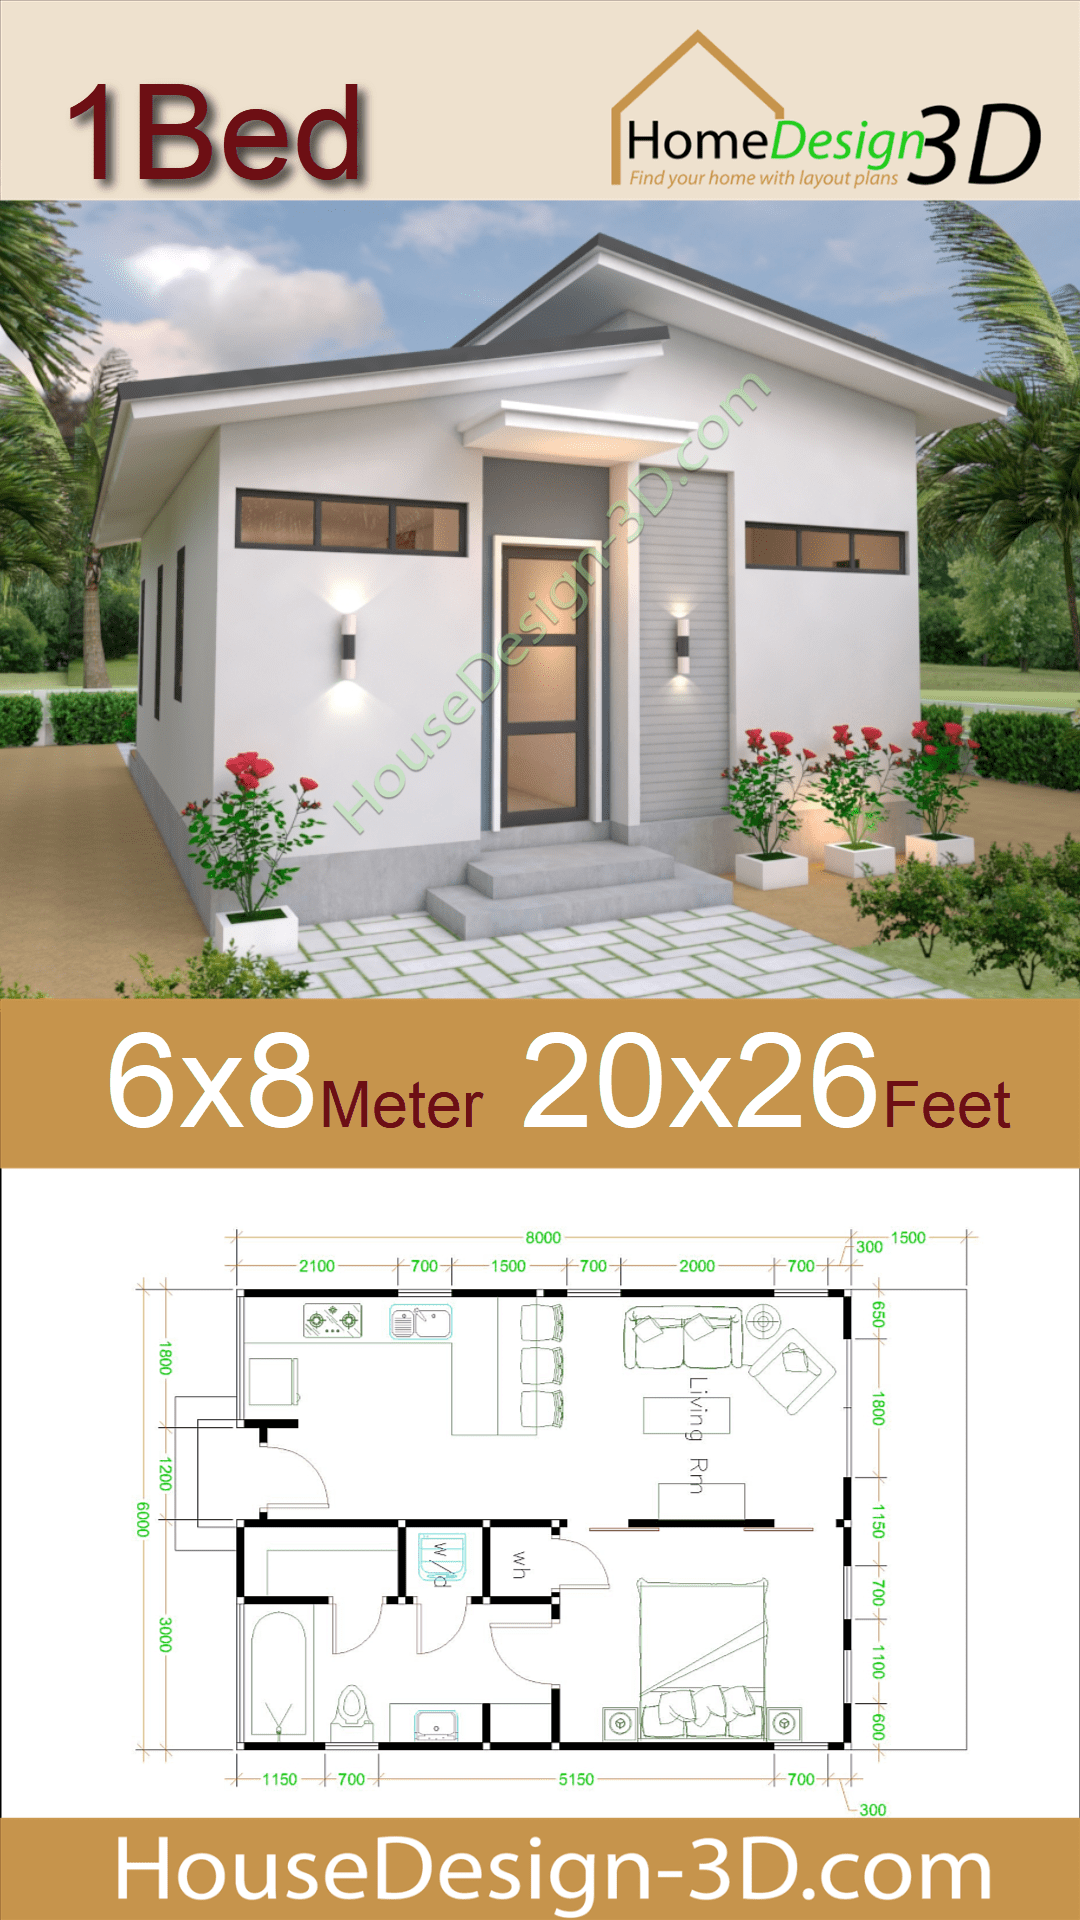 Studio House Plans 6x8 Shed Roof Free Download House Design 3d Small House Design House Plans Tiny House Design